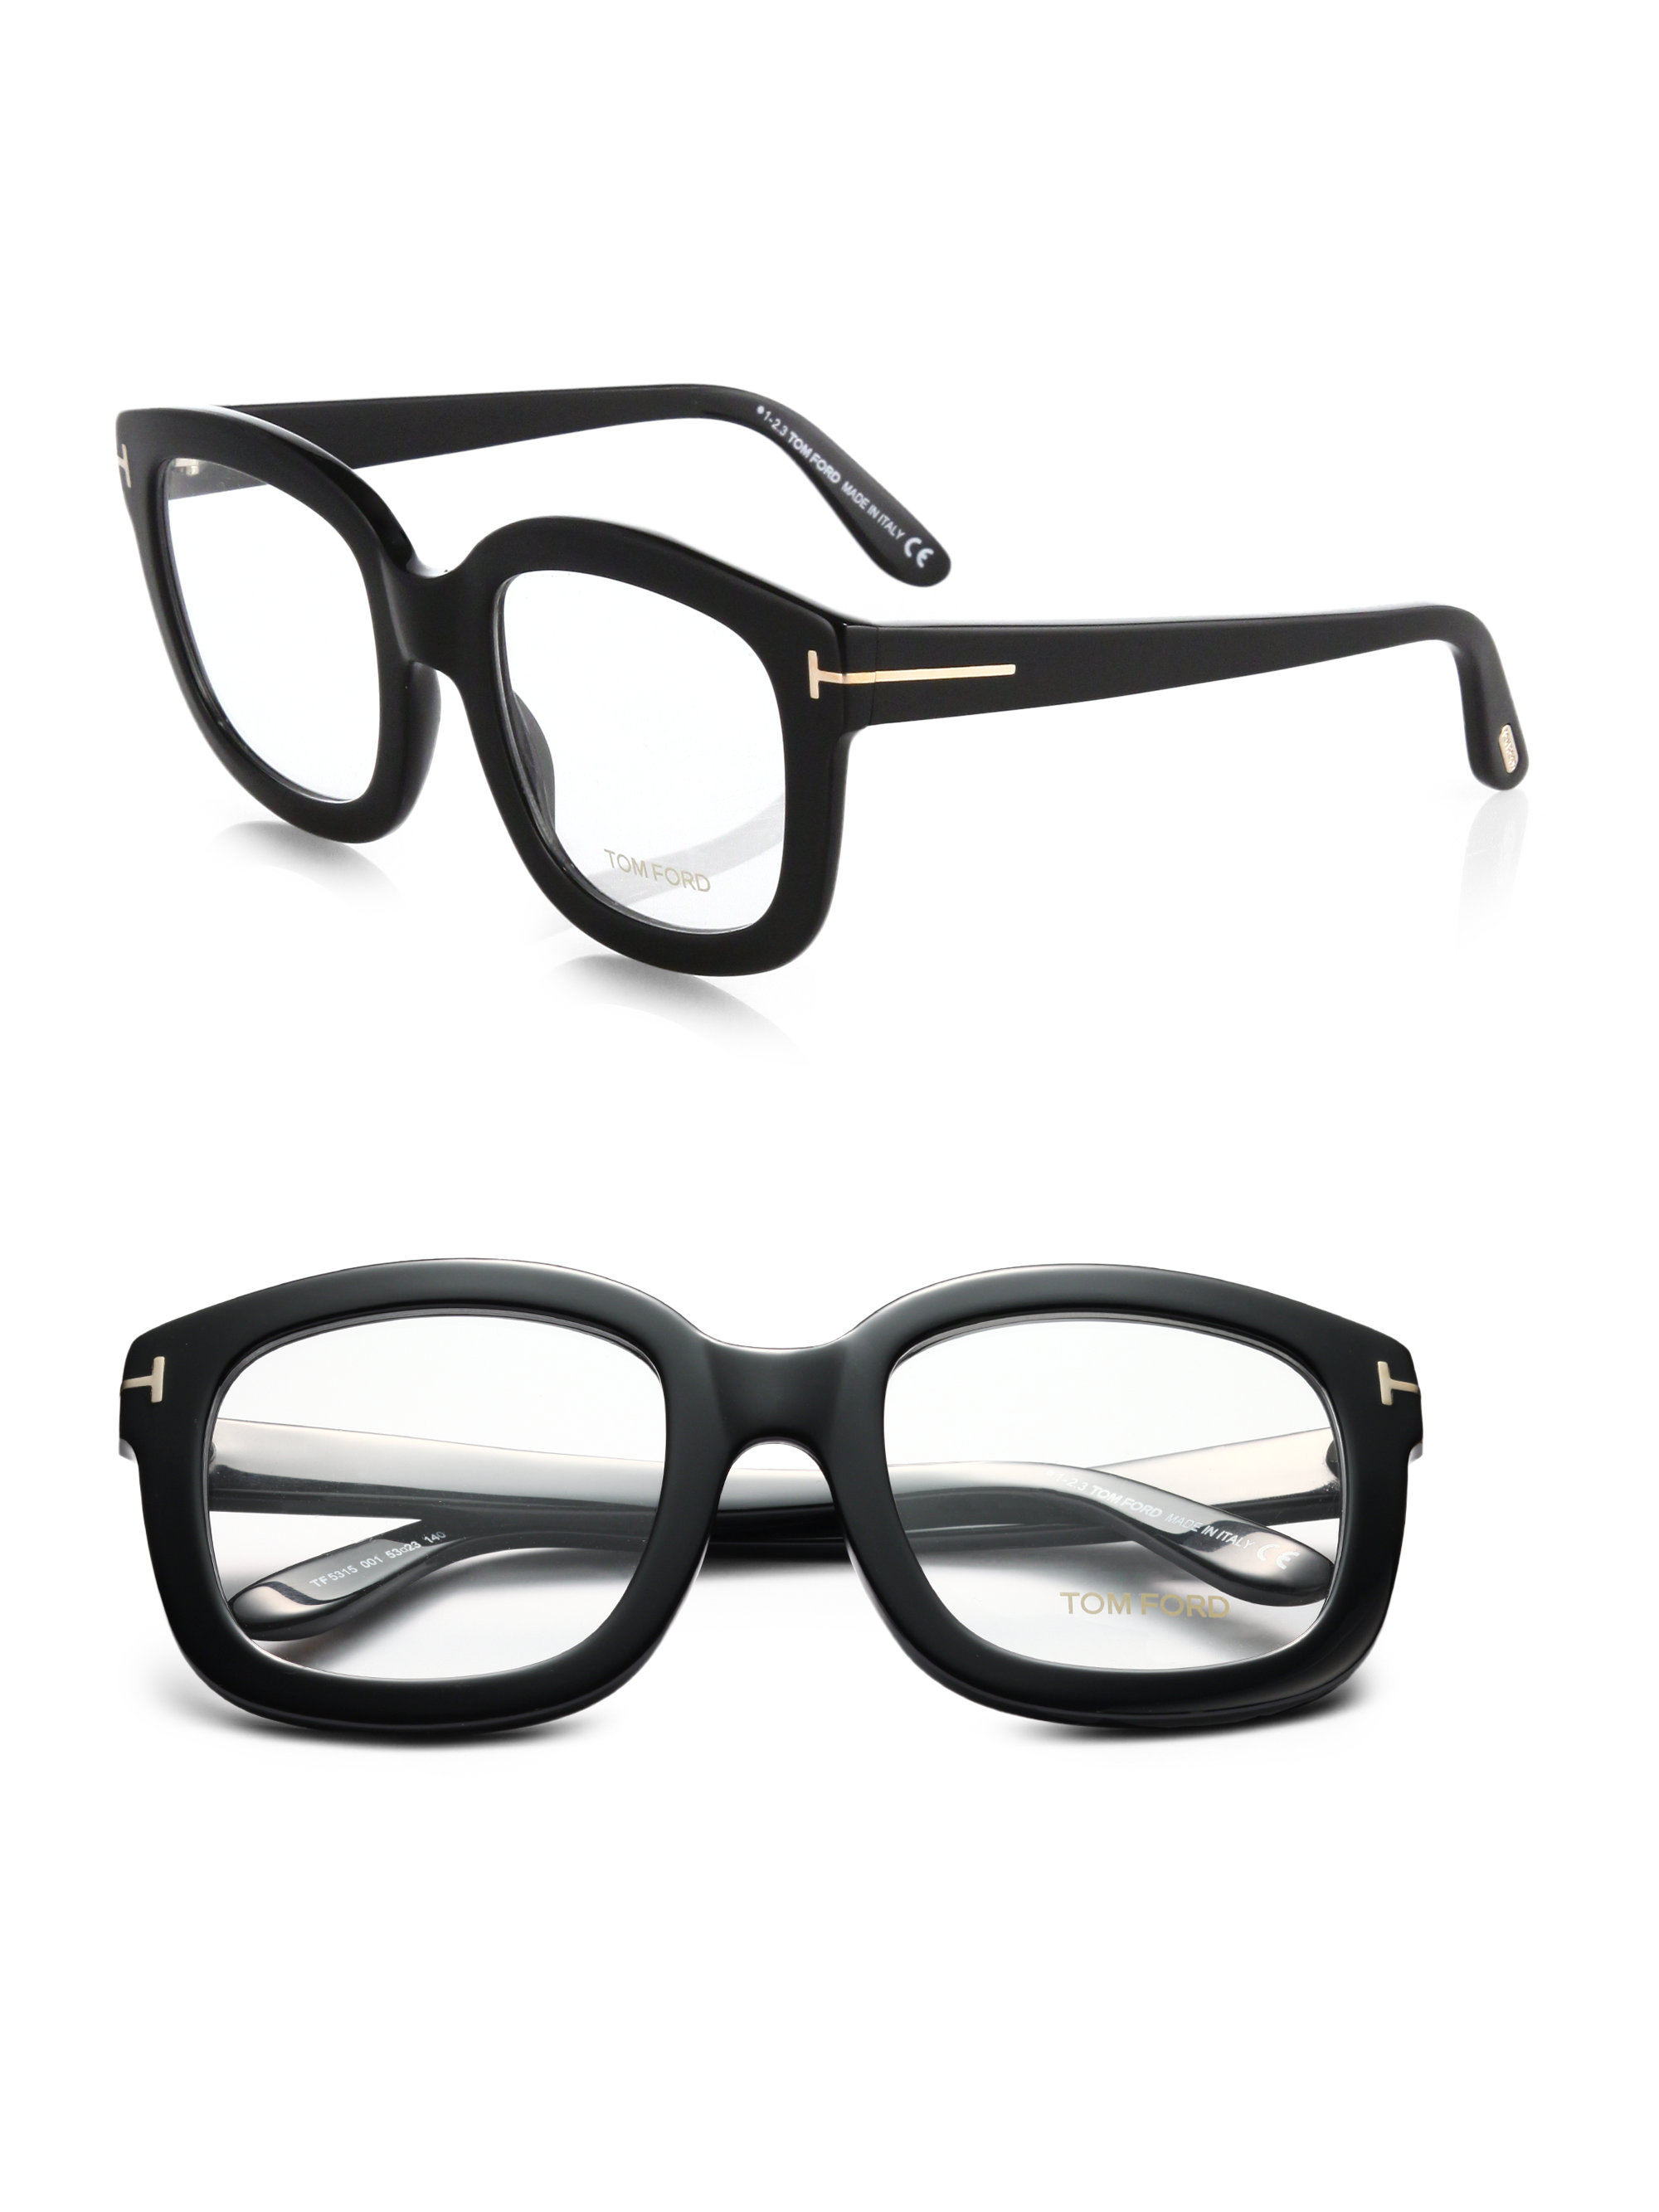 pin men accents lenses with tom ford brown square s gold eyeglasses logo and hardware tone